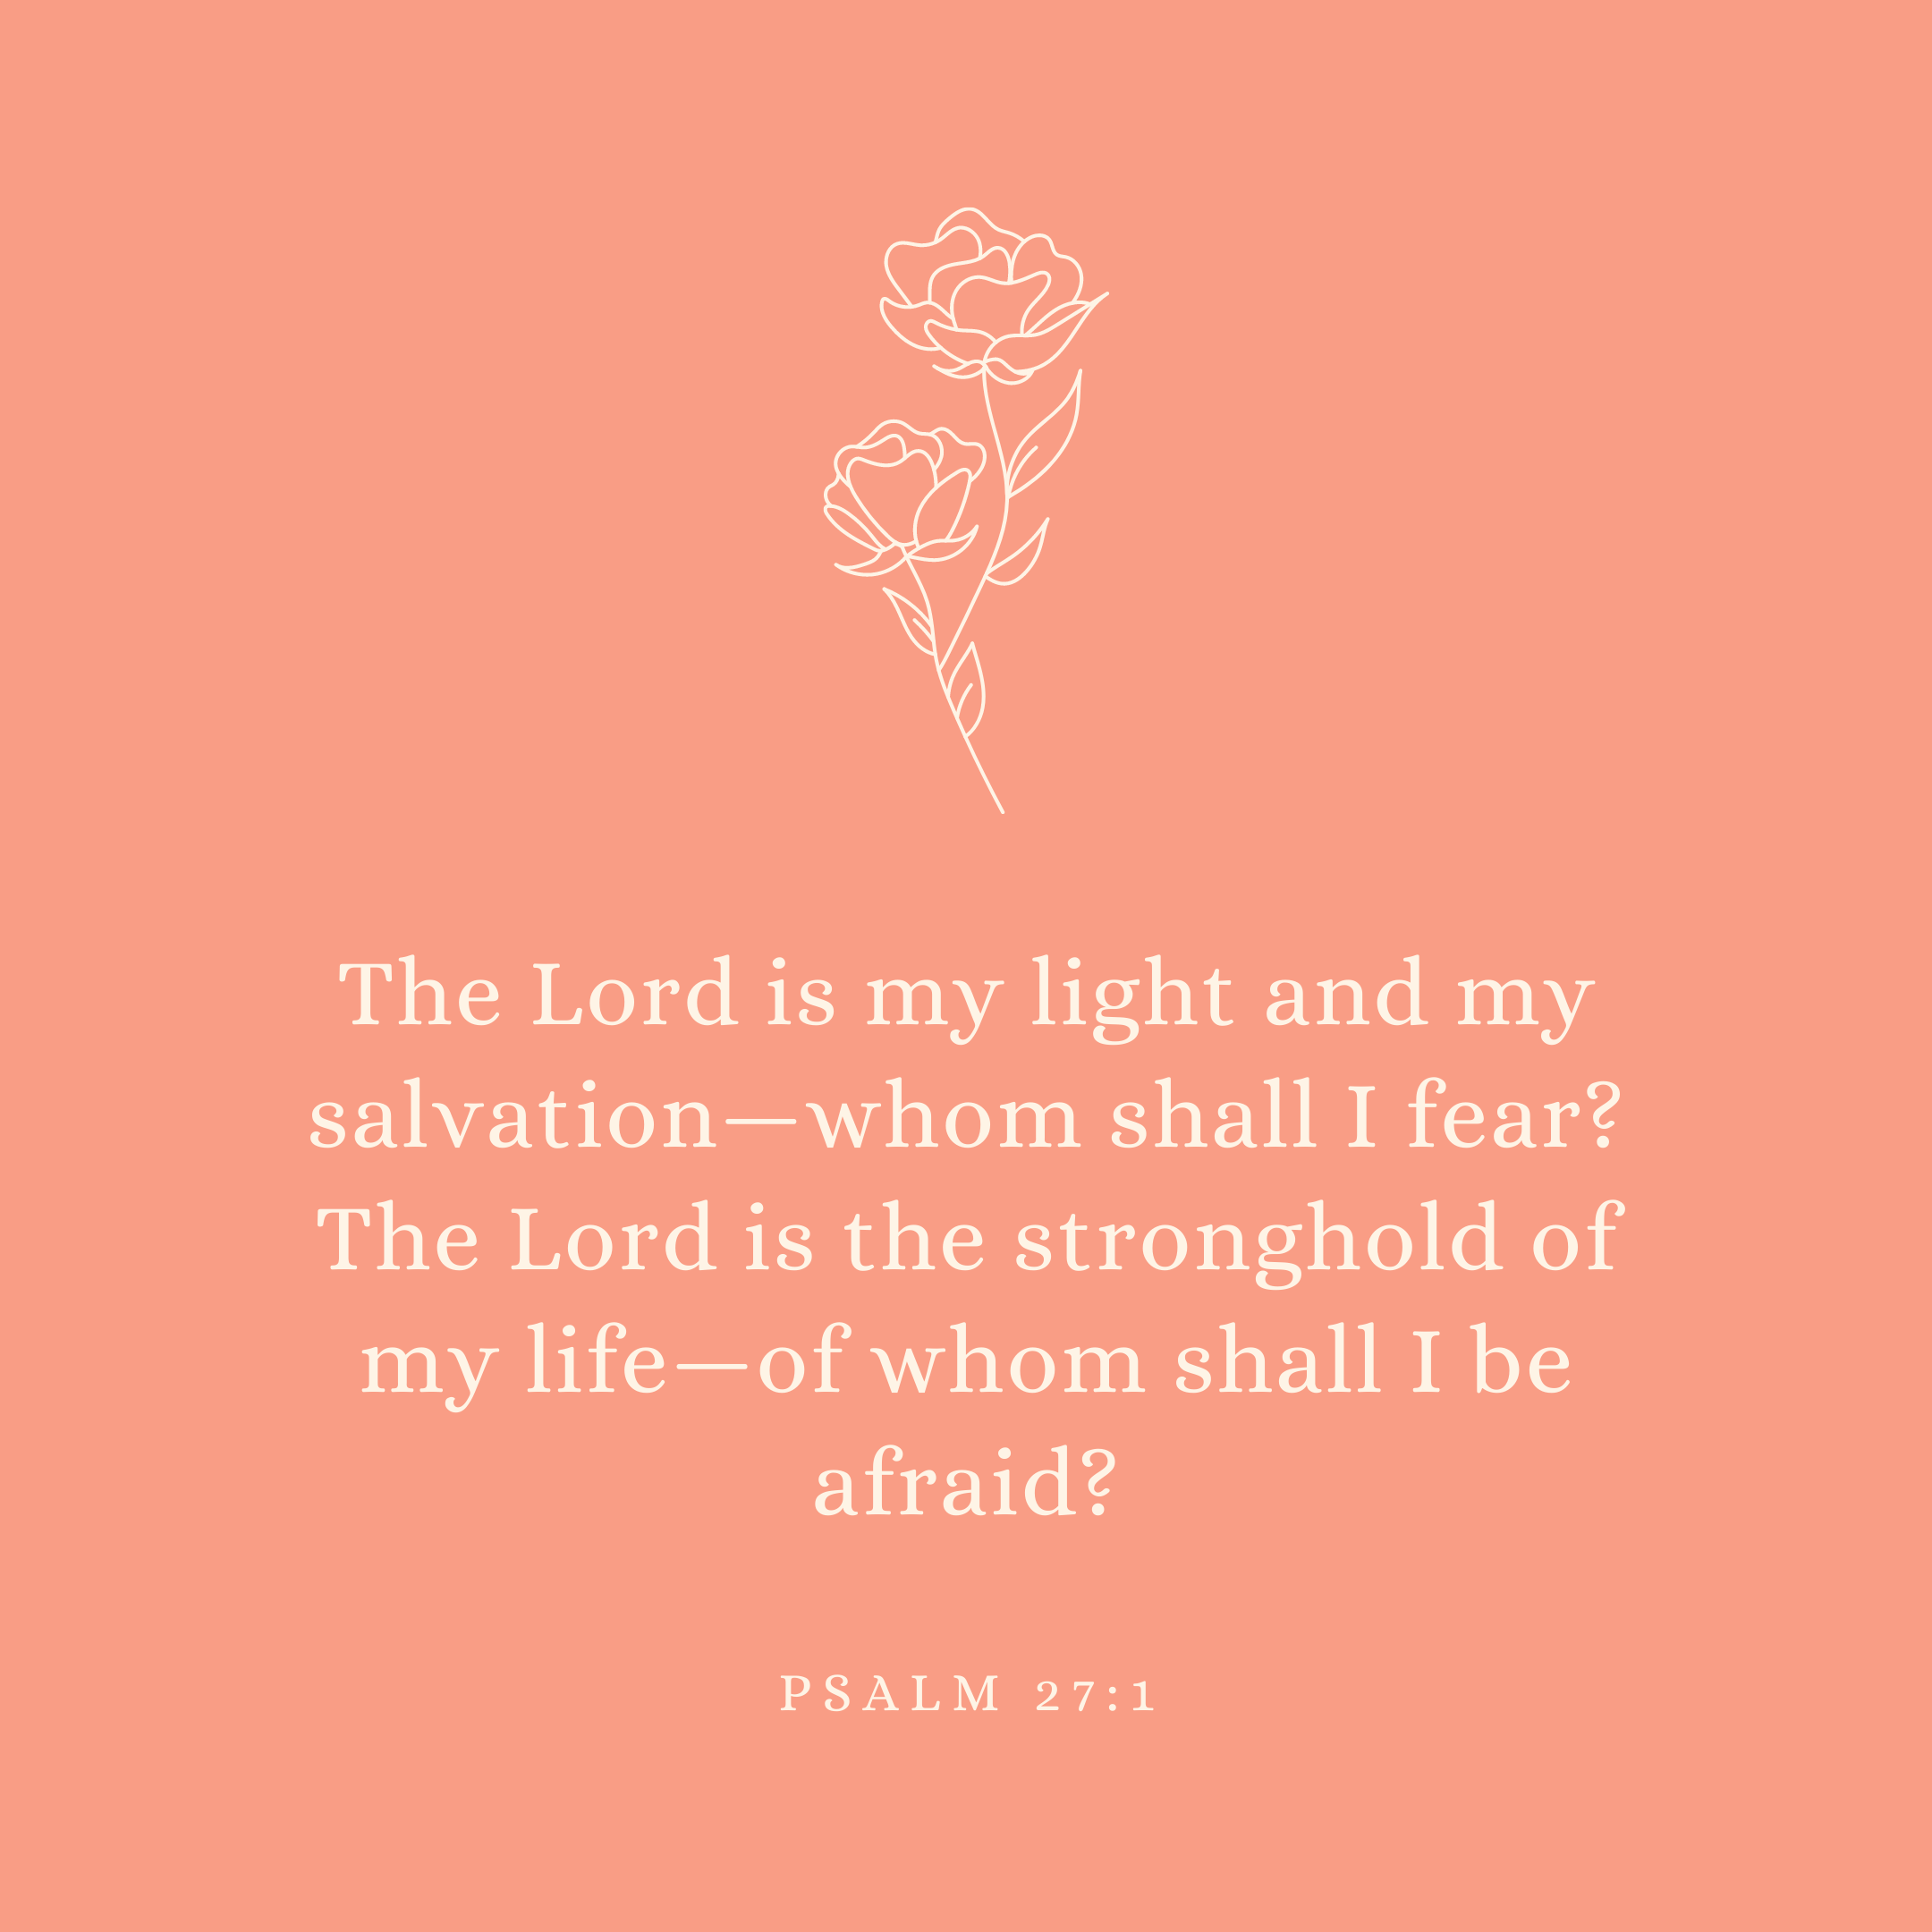 Psalm 27:1 The Lord is my light and my salvation—whom shall I fear? The Lord is the stronghold of my life—of whom shall I be afraid?